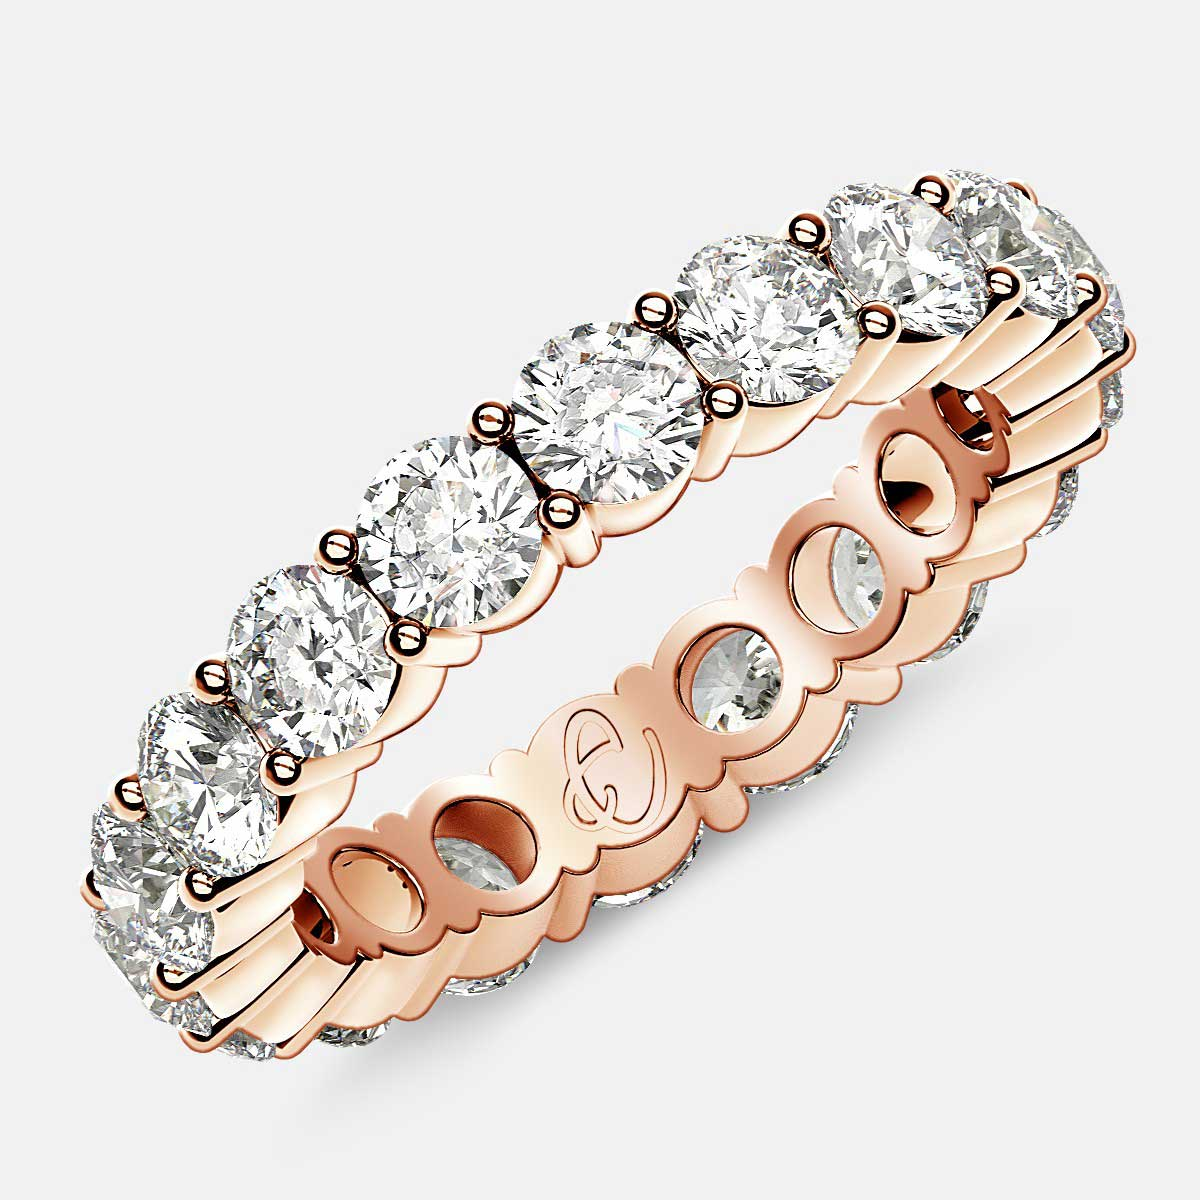 Eternity Ring with Prong Set Round Diamonds in 18k Rose Gold